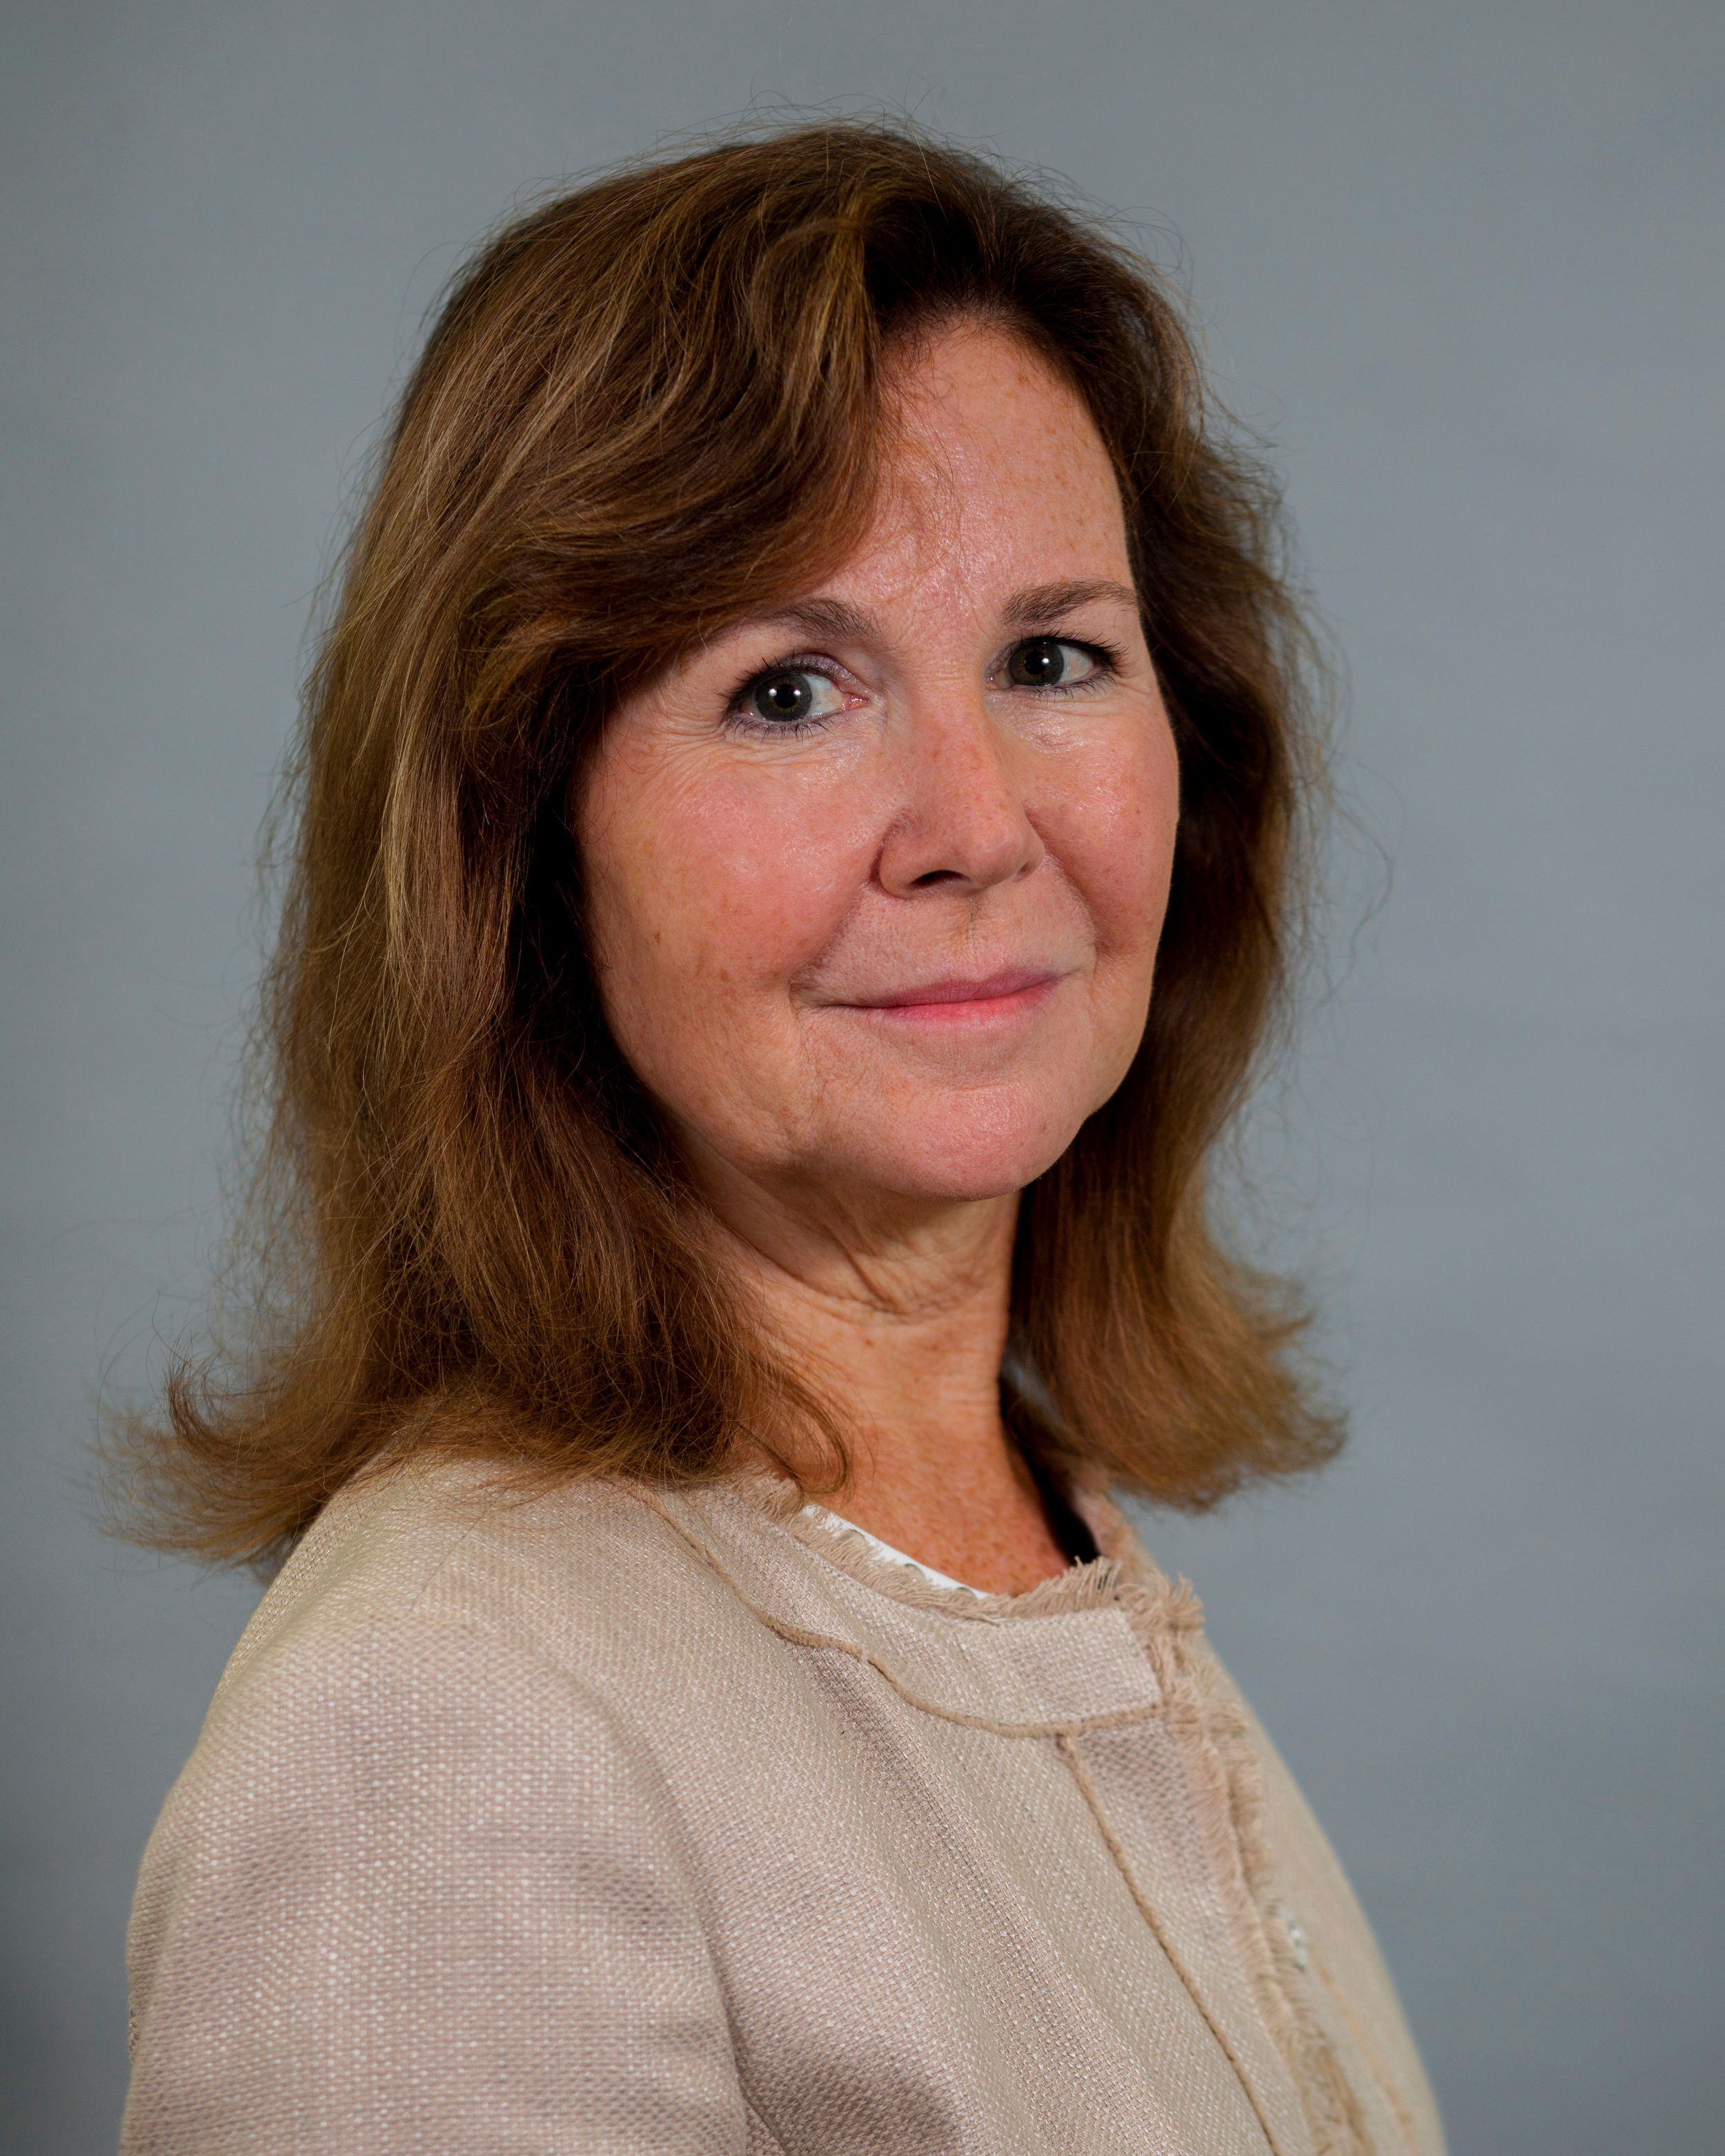 mary beth thornton - Mary Beth has ten years of experience as a Town Council Representative including Chair from 2017-2019. She continues to serve the residents of Trumbull with the utmost integrity. Mary Beth wants to preserve the high quality of life in Trumbull through fiscal responsibility and transparency, as well as smart commercial development that provides tax relief for the homeowner.